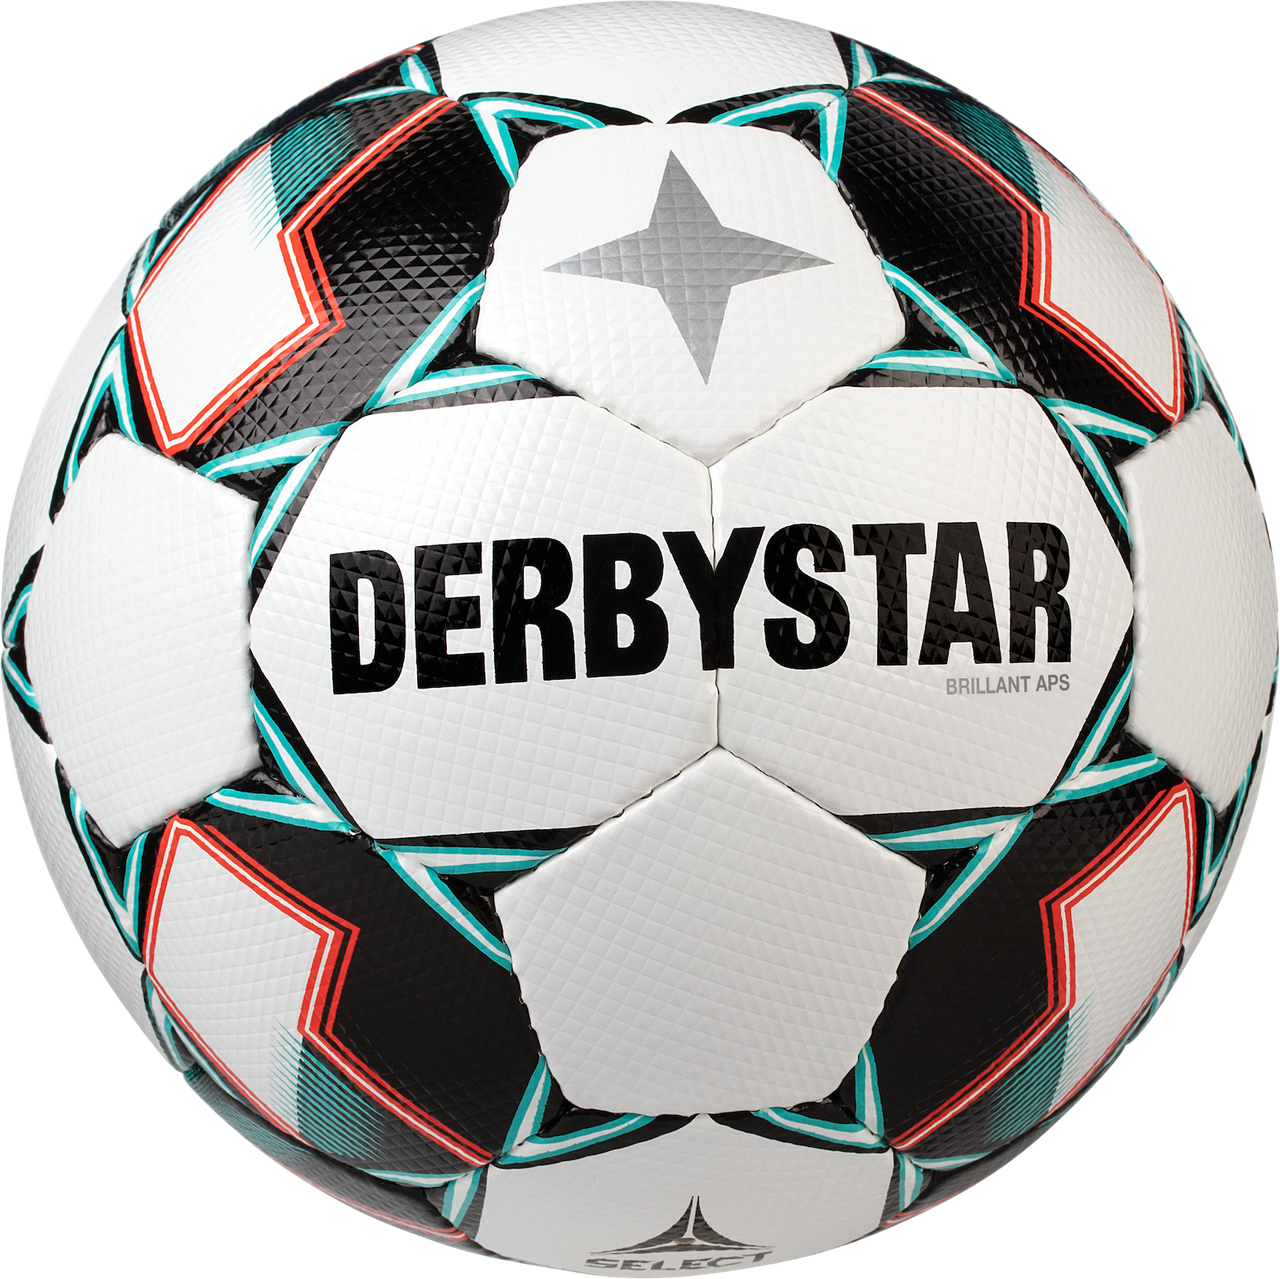 DERBYSTAR Match Ball - BRILLANT APS